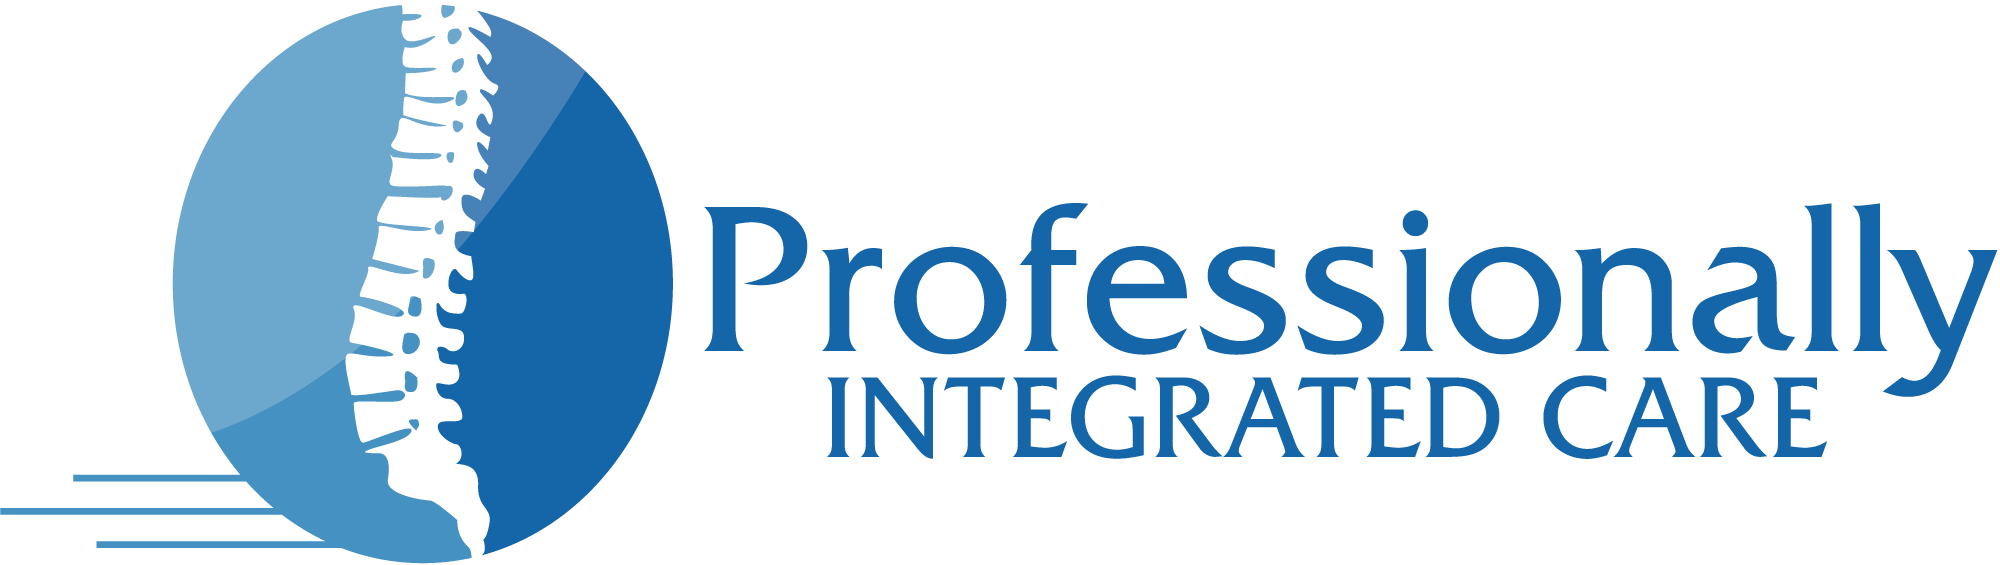 Professionally Integrated Care